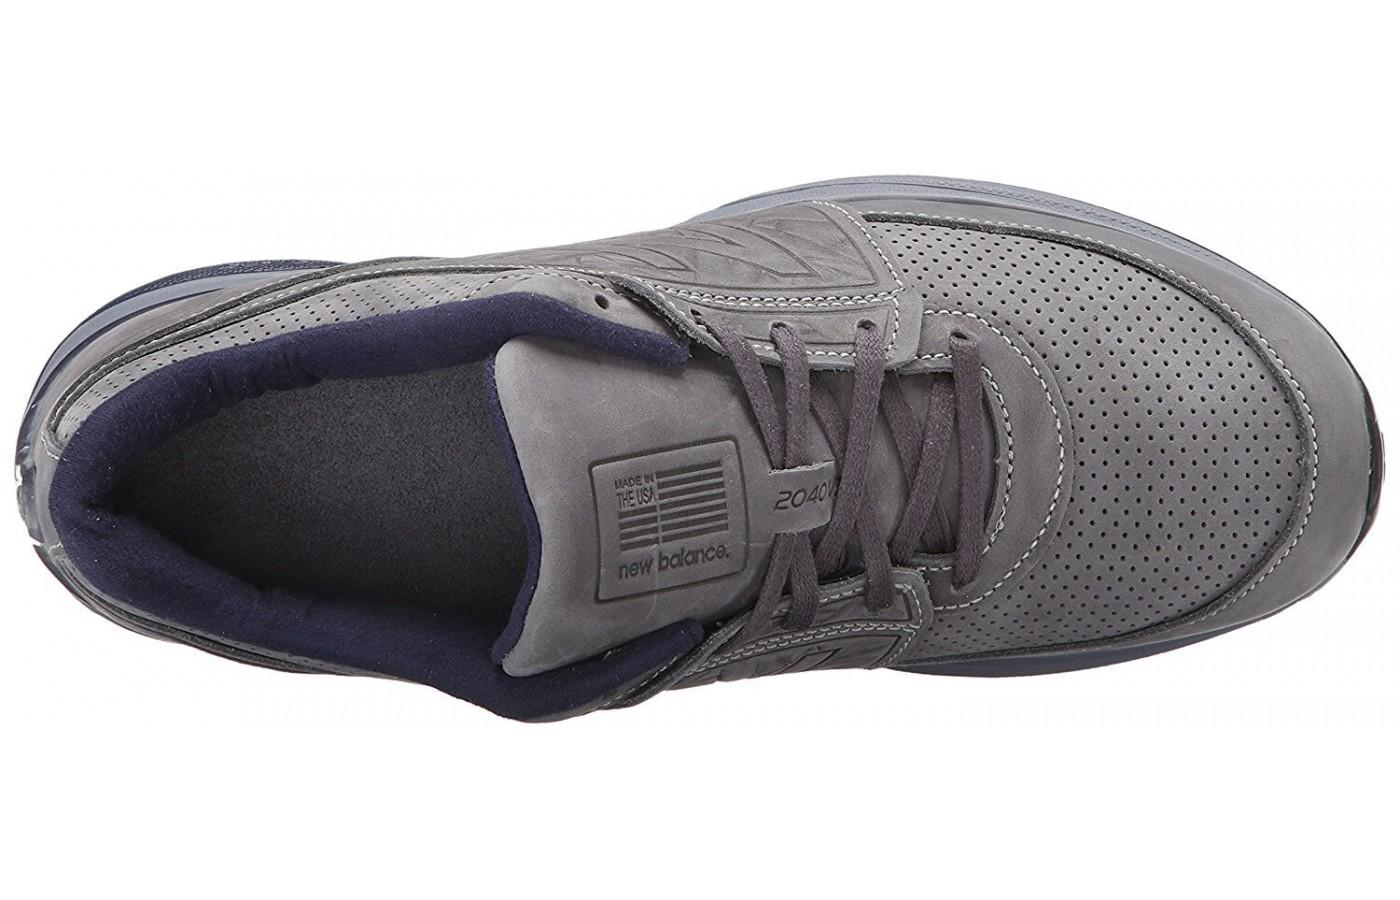 Aerial view of the New Balance 2040 v3